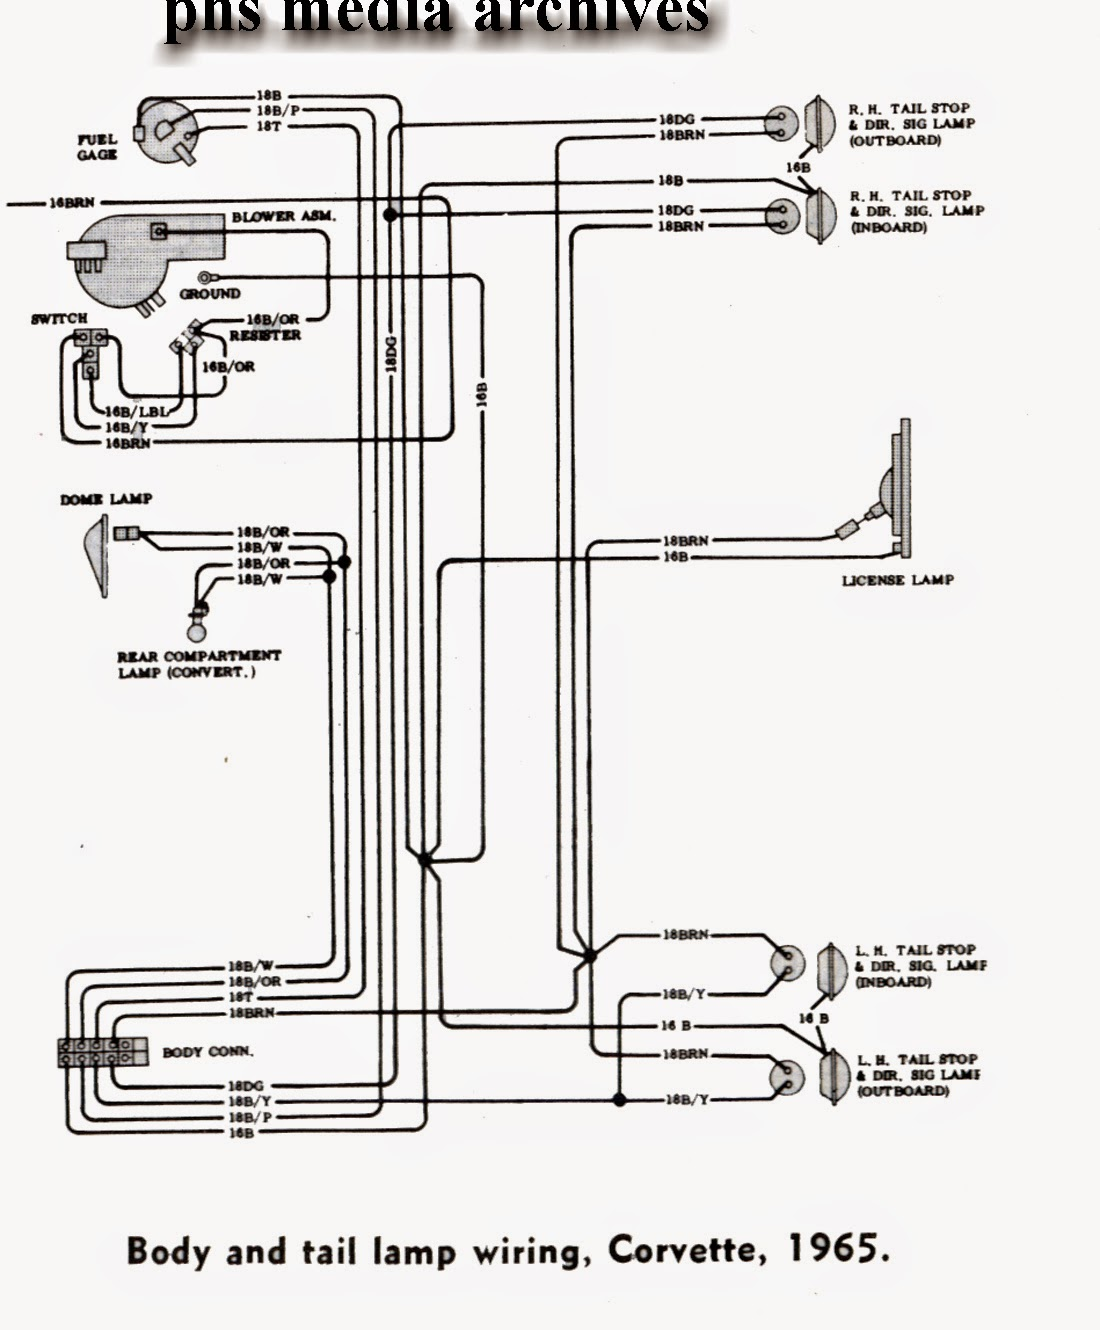 hight resolution of 1980 corvette wiring harnes